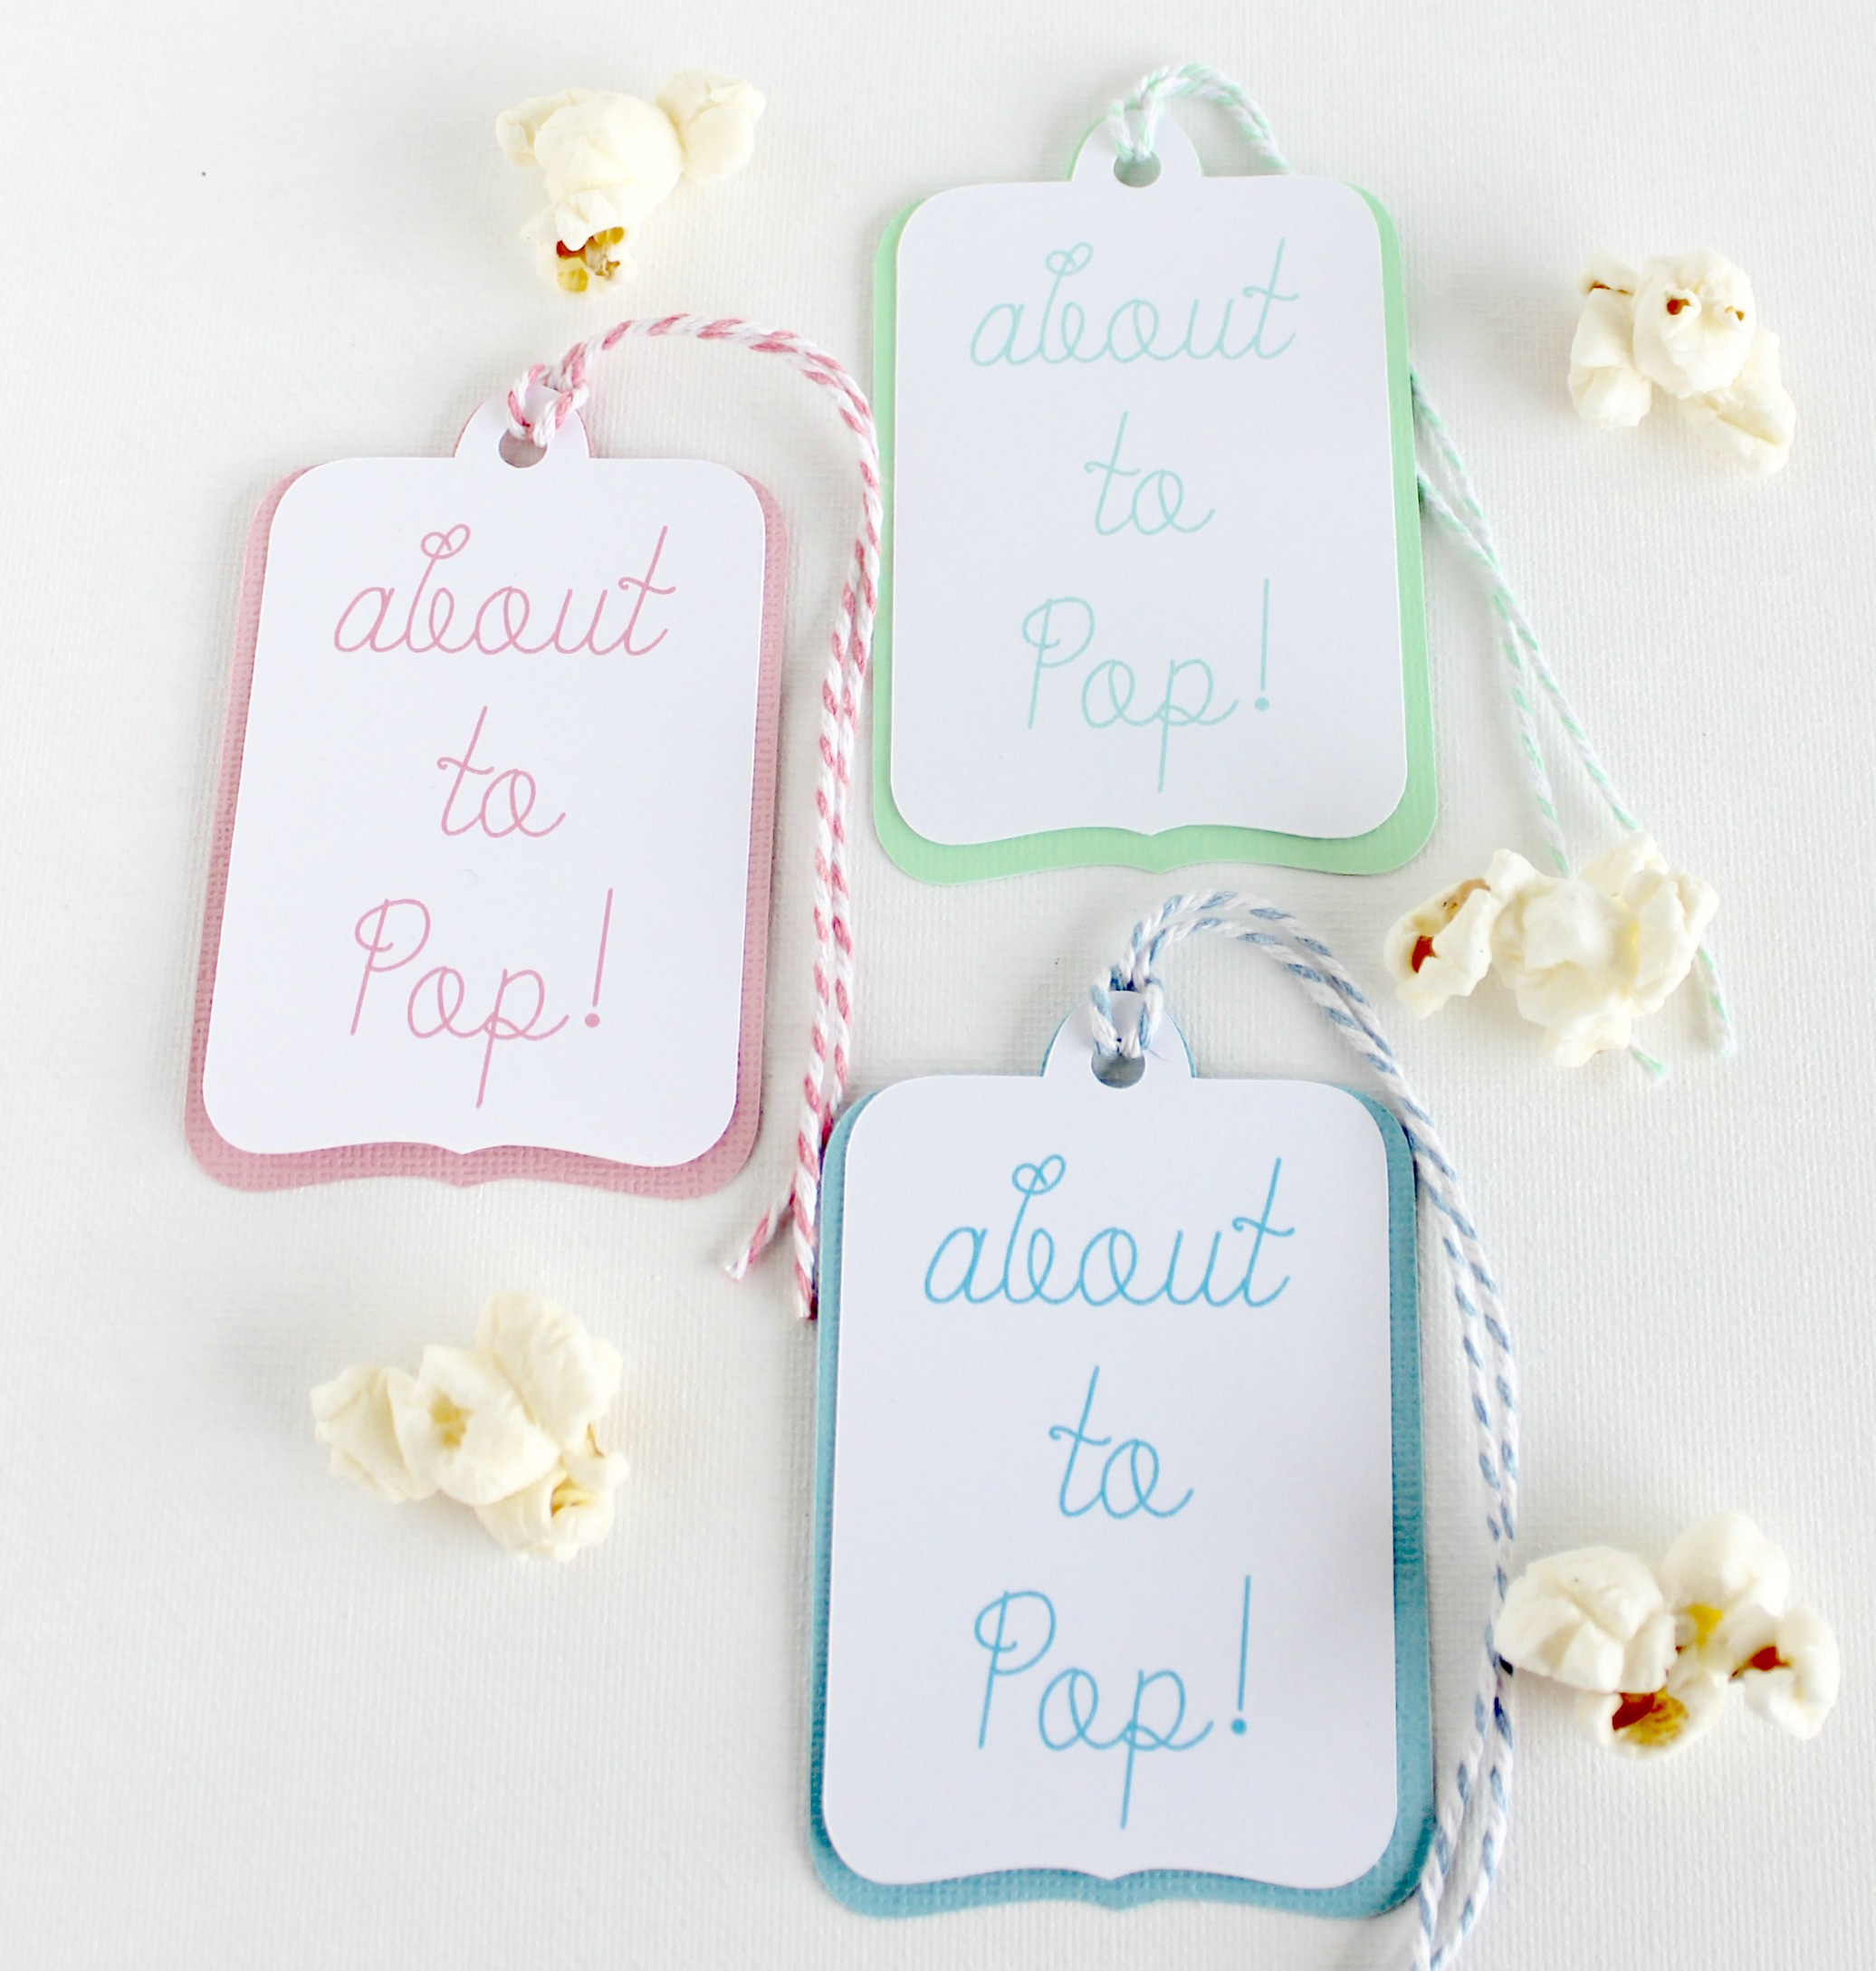 About to Pop - Baby Shower Popcorn Favor Tags - Hymns and Verses